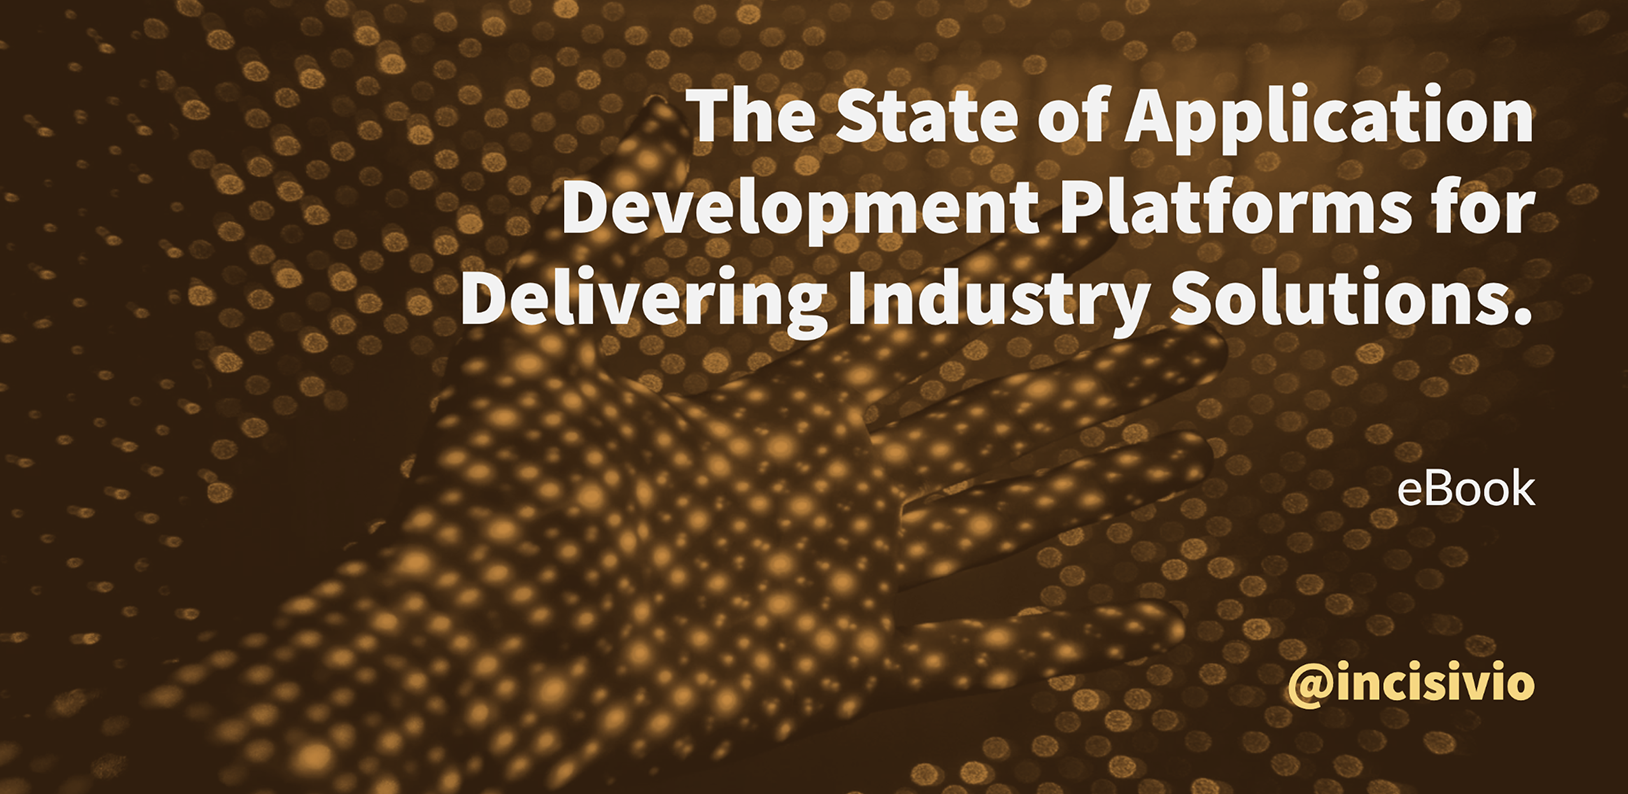 The State of Application Development Platforms for Delivering Industry Solutions